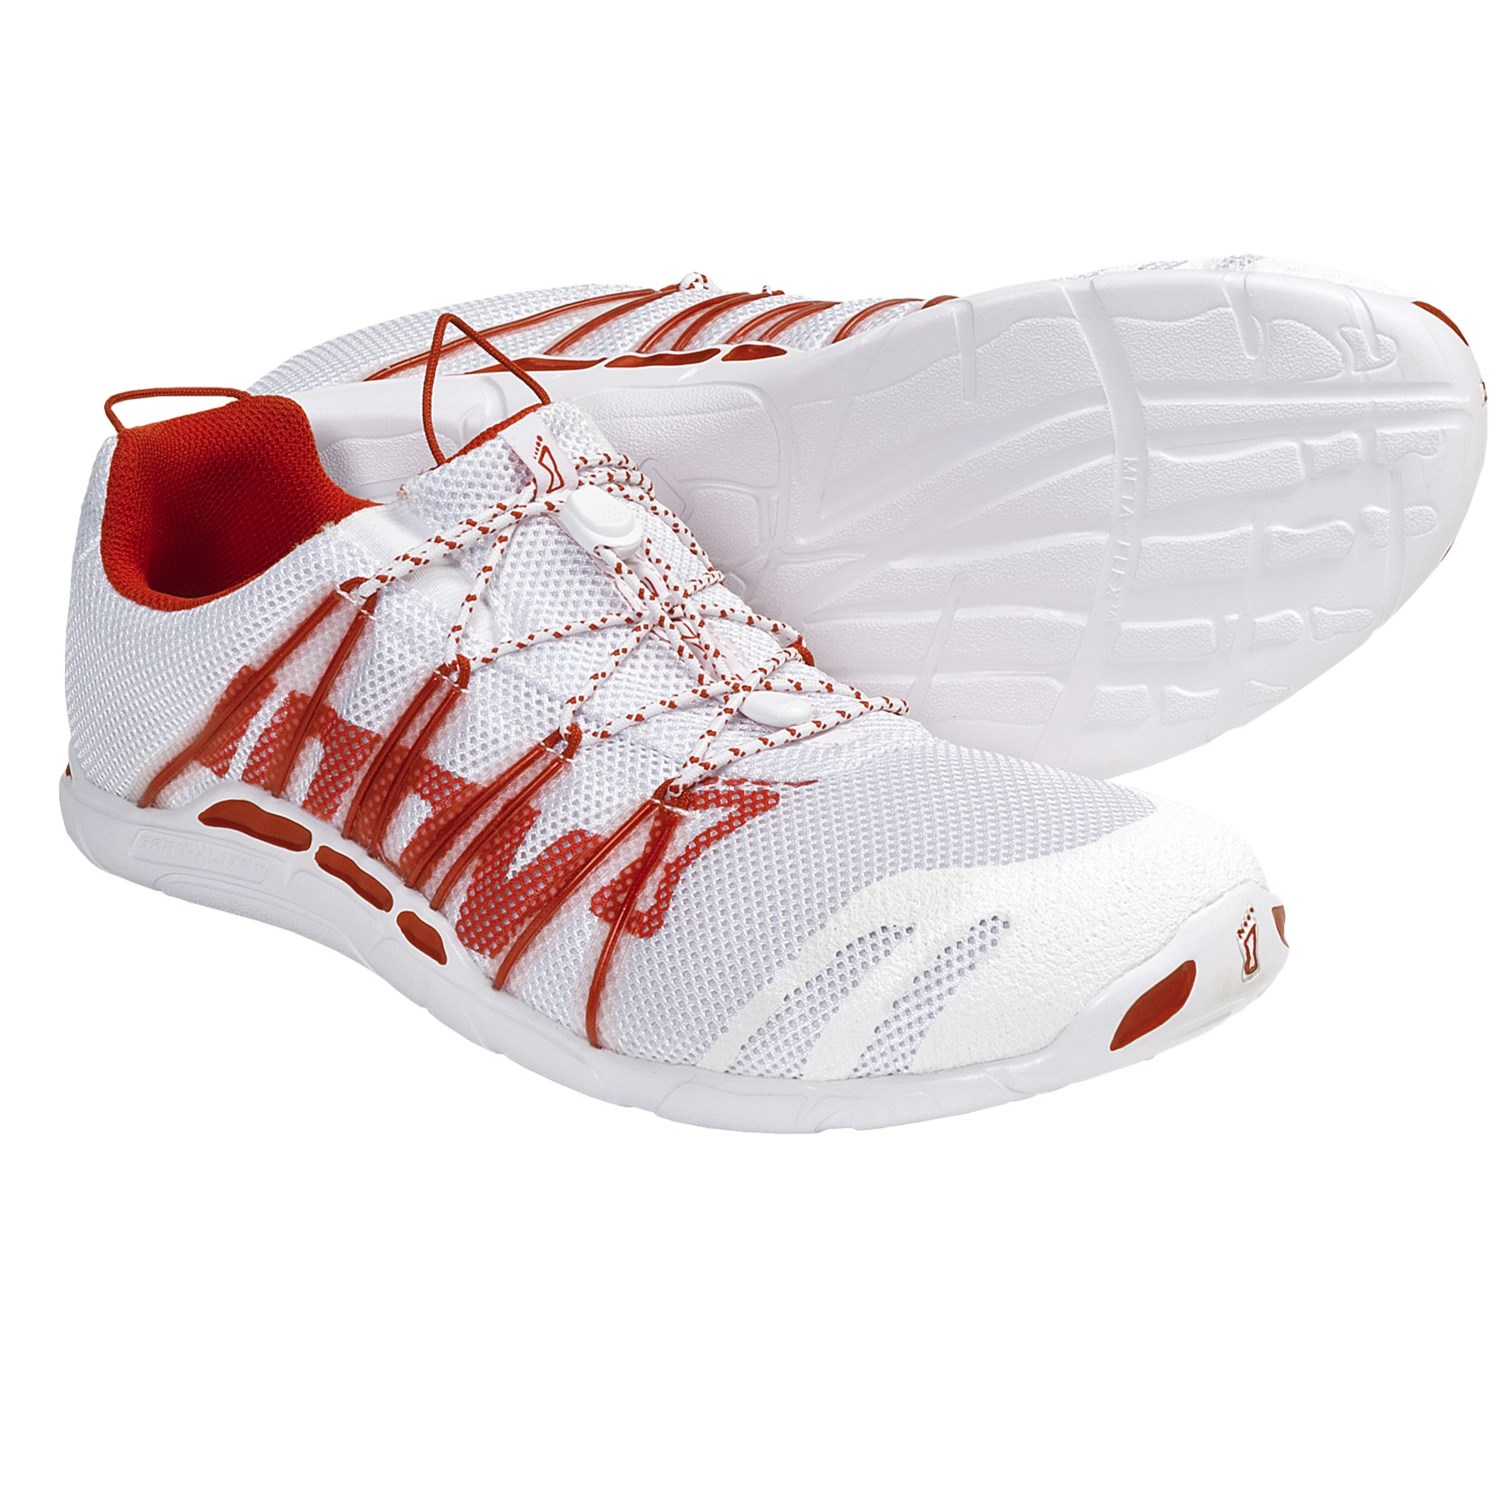 Lite 150 Running Shoes - Minimalist (For Men and Women) in White/Red